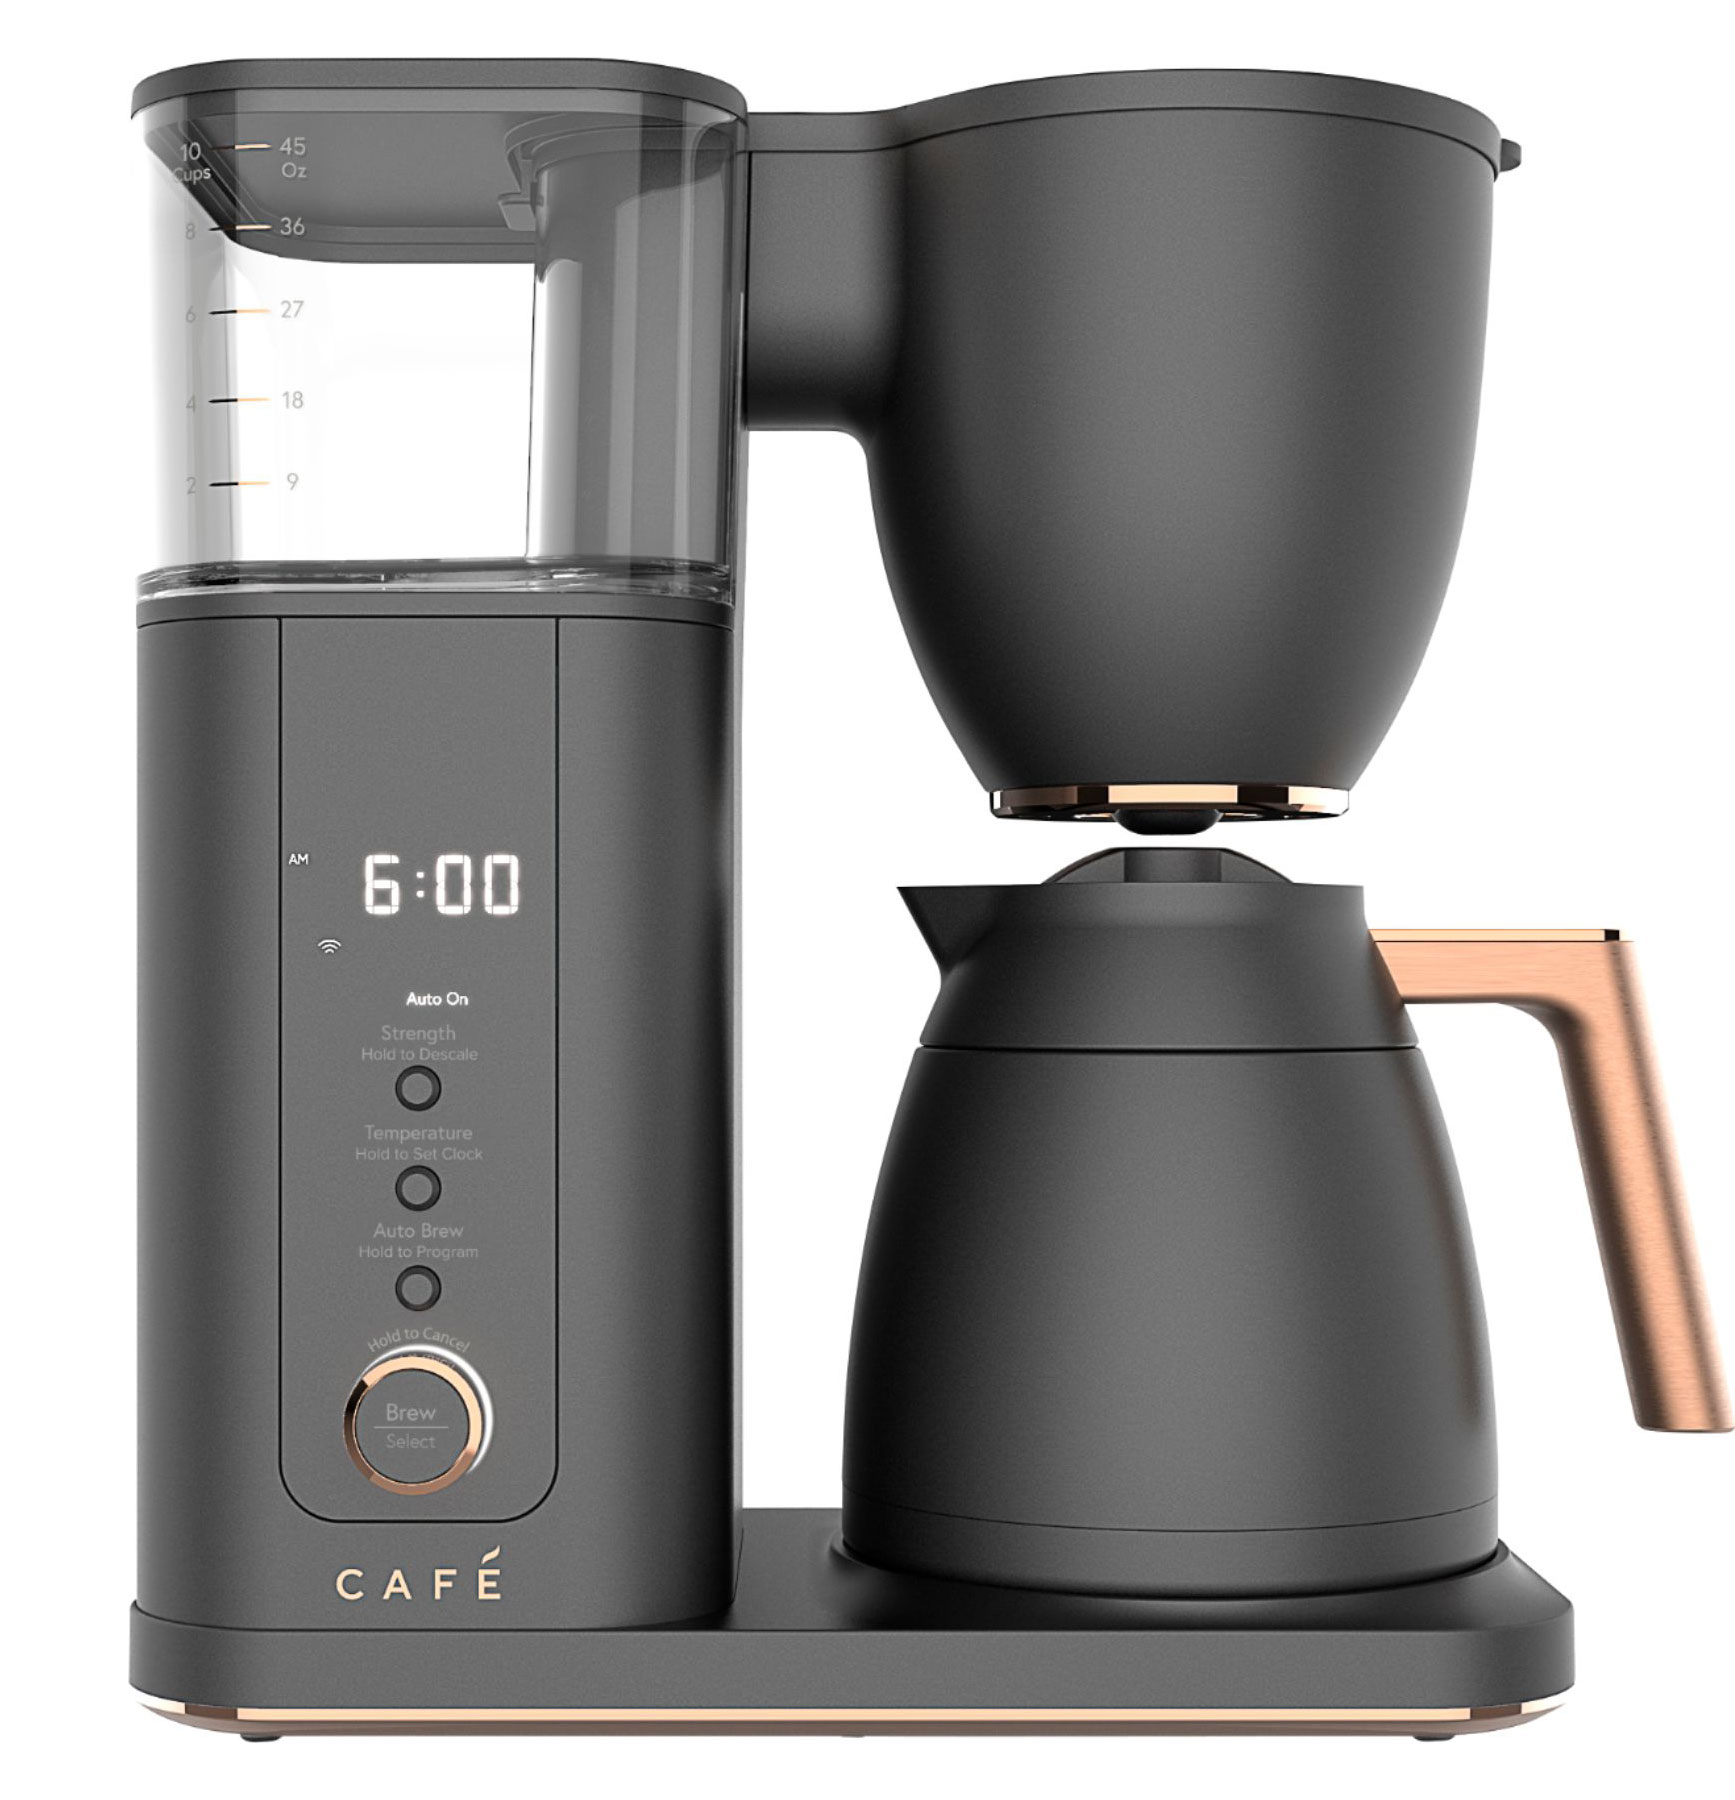 Best housewarming gifts, ideas - Café Drip 10-Cup Coffee Maker with WiFi